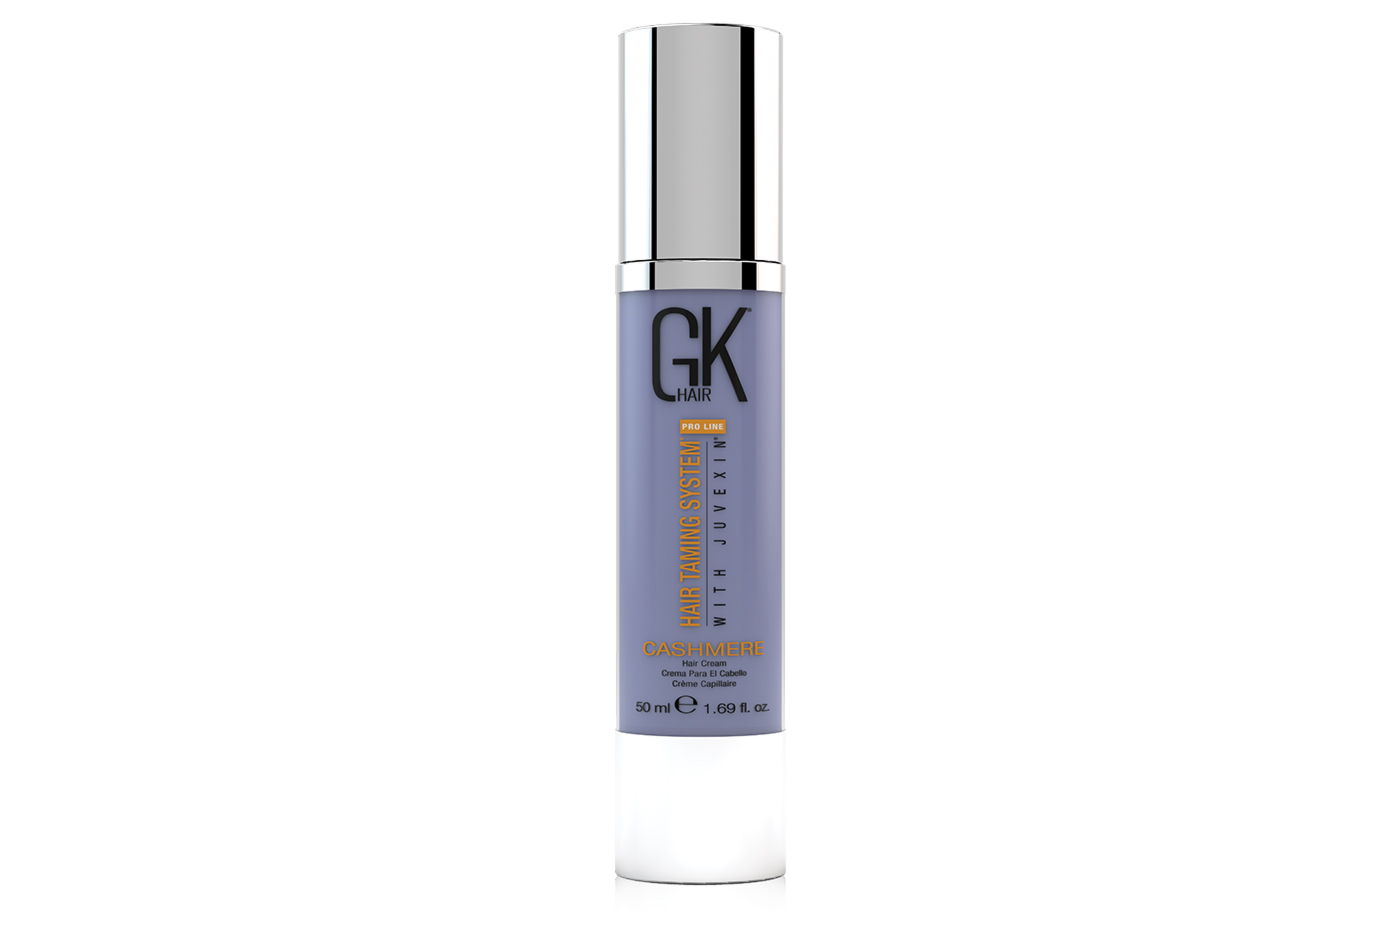 Get frizz-free and shiny hair with GK Hair